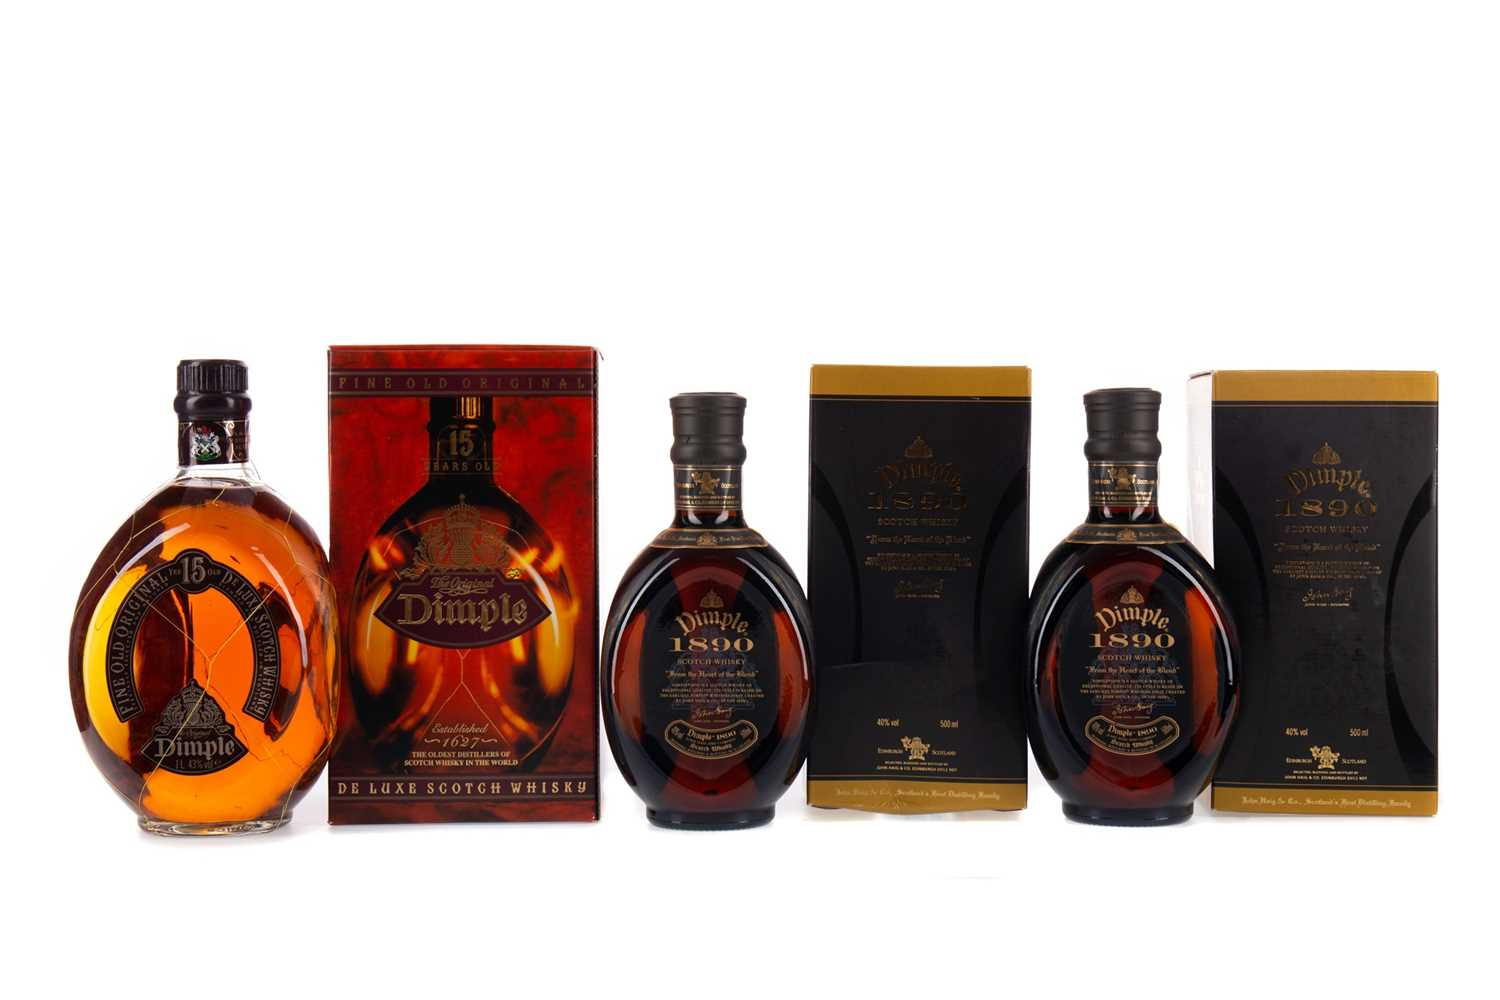 Lot 44 - ONE LITRE OF DIMPLE  15 YEARS OLD AND TWO BOTTLES OF DIMPLE 1890